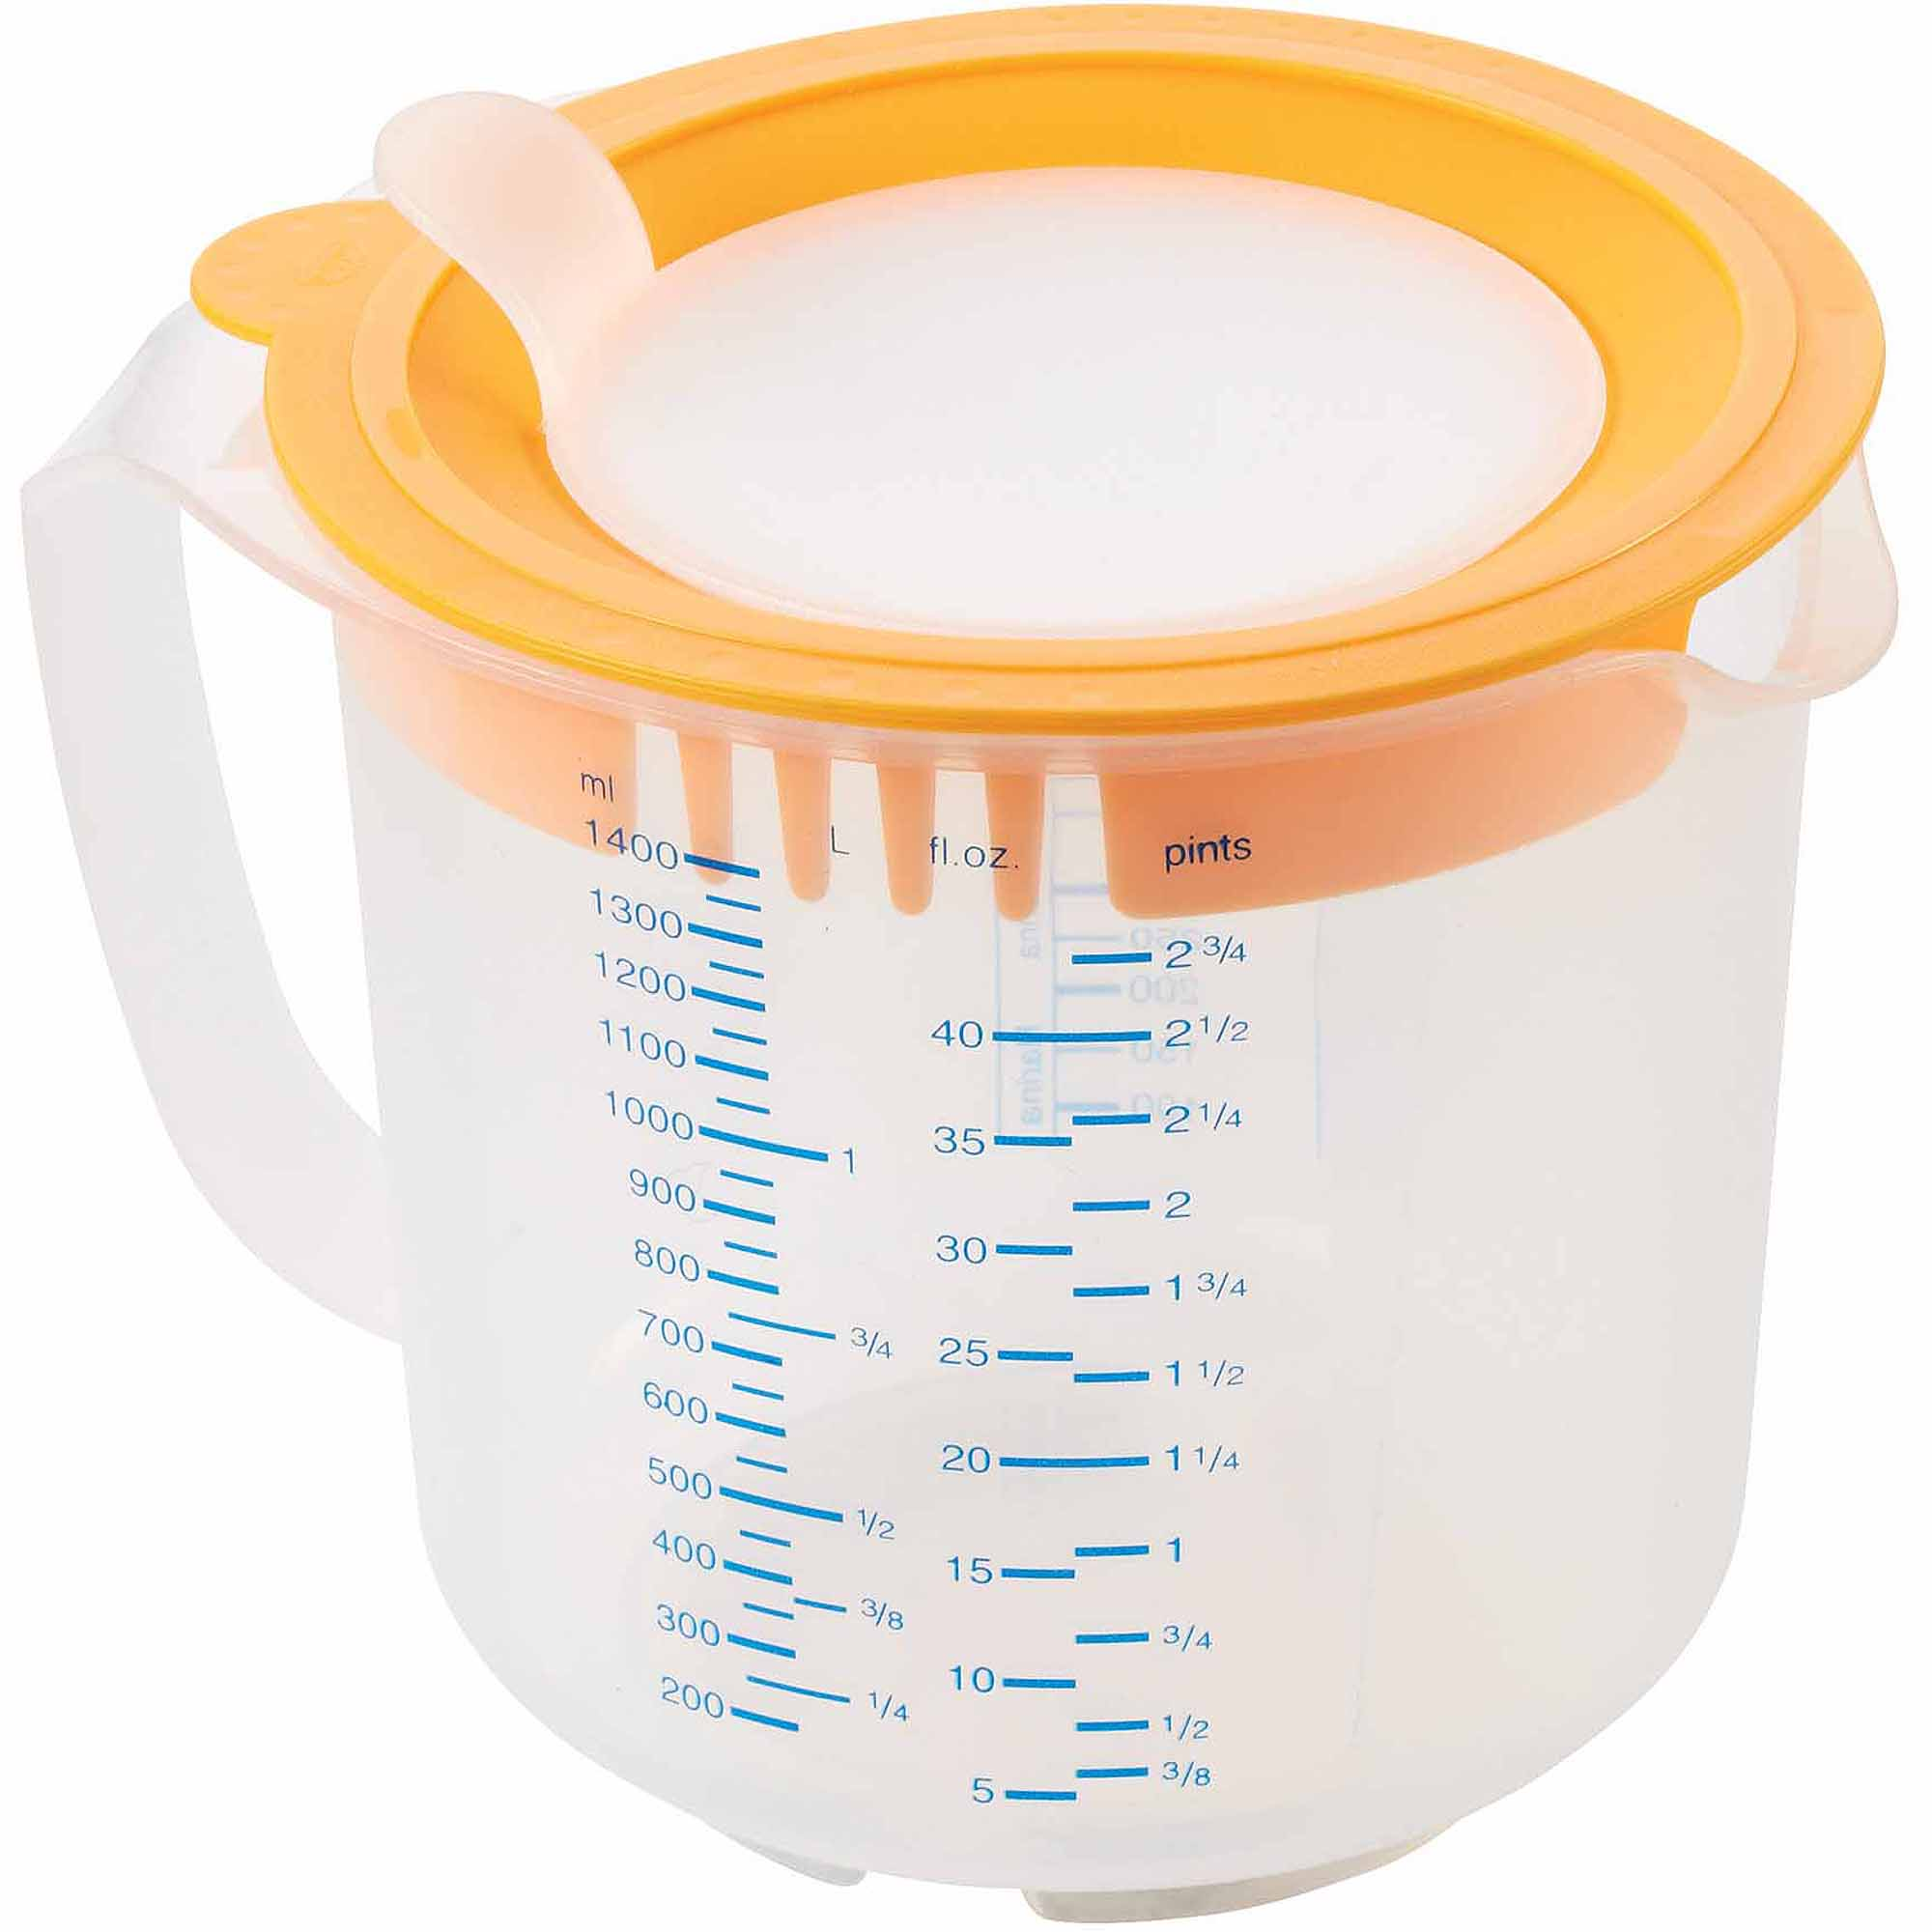 Leifheit 6-Cup 3-in-1 Measuring Cup, Transparent White and Orange